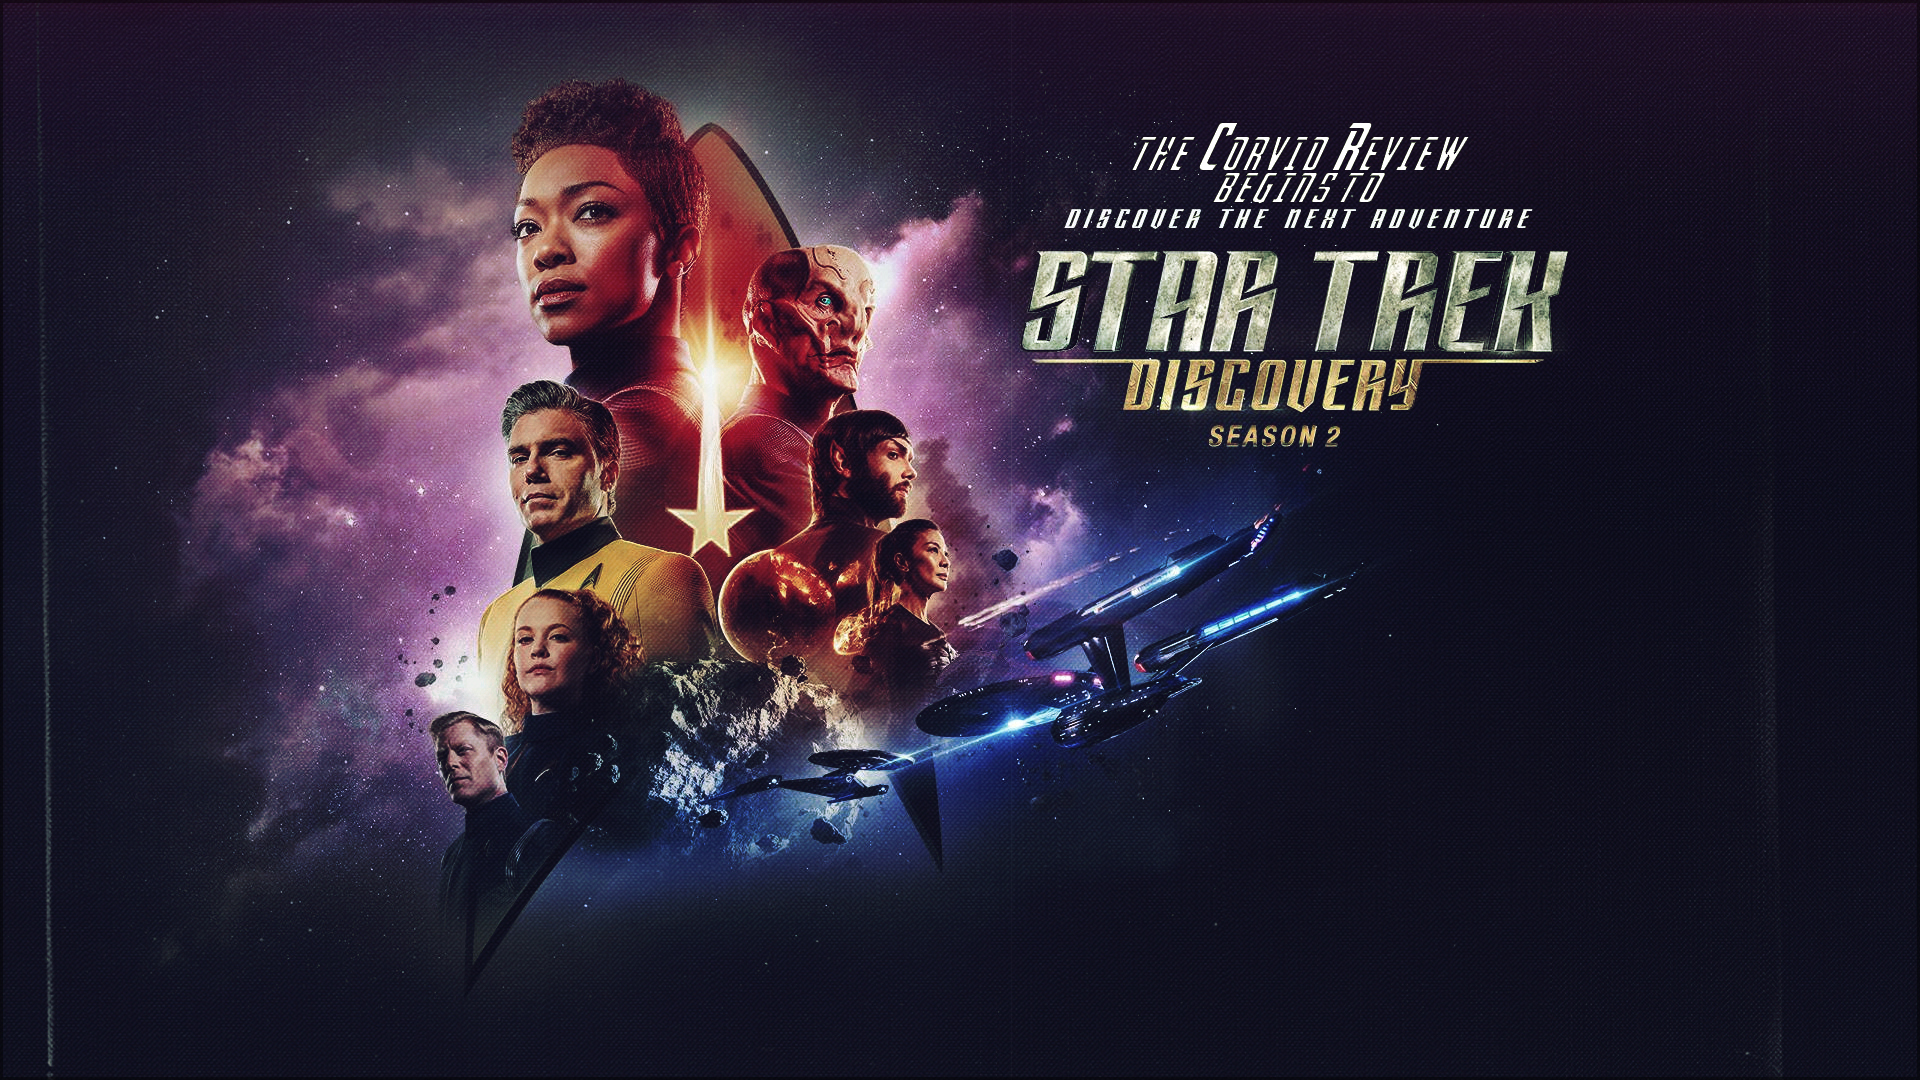 the corvid review - star trek month star trek discovery season 2 - kepxwzr